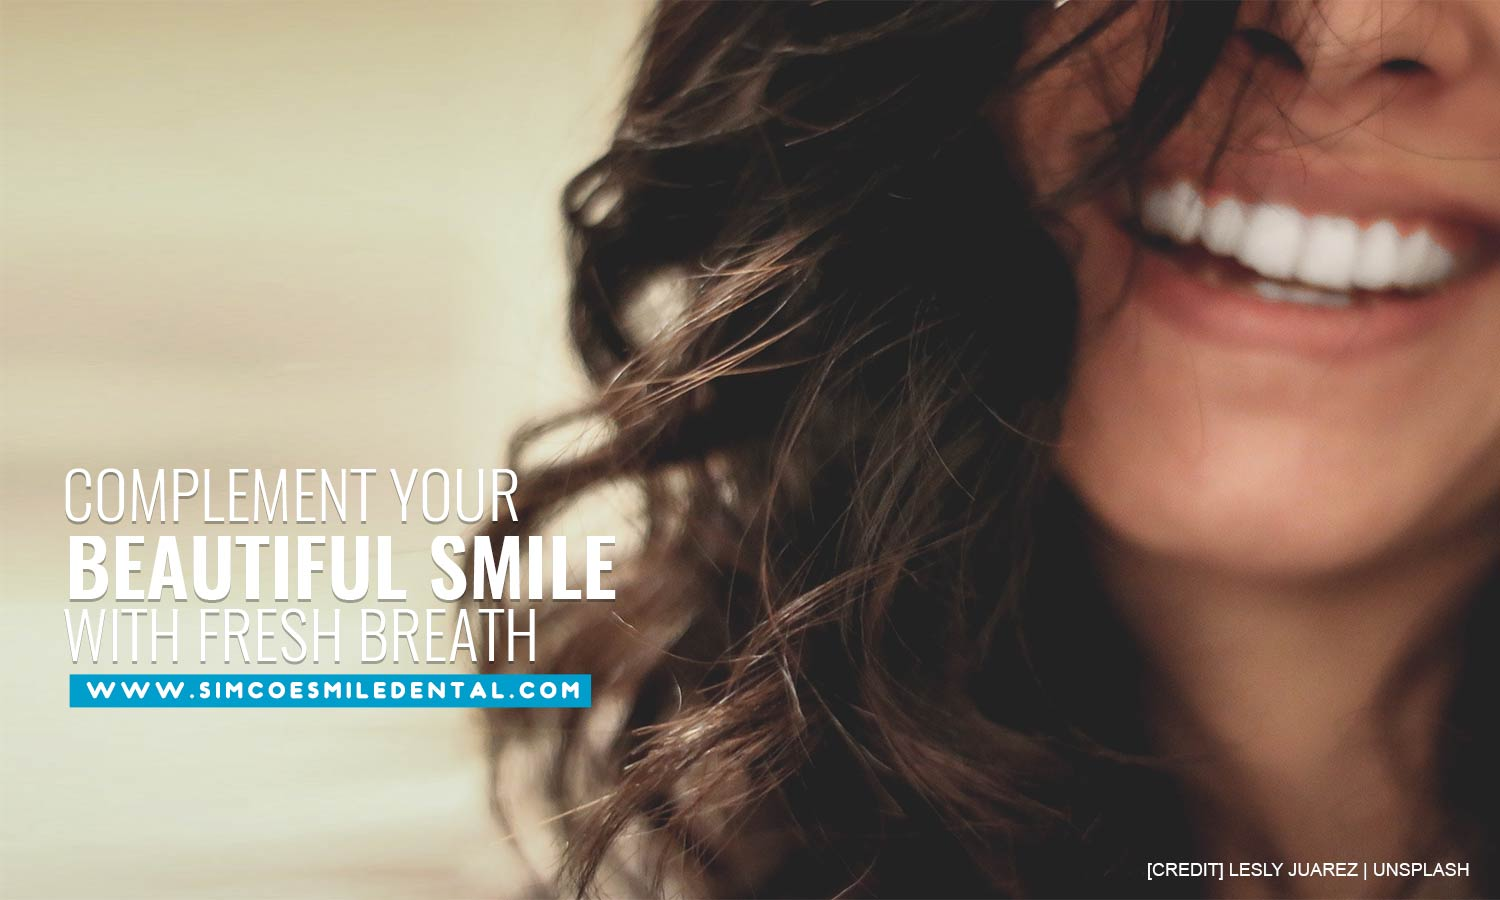 Complement-your-beautiful-smile-with-fresh-breath Halitosis and Your Oral Health